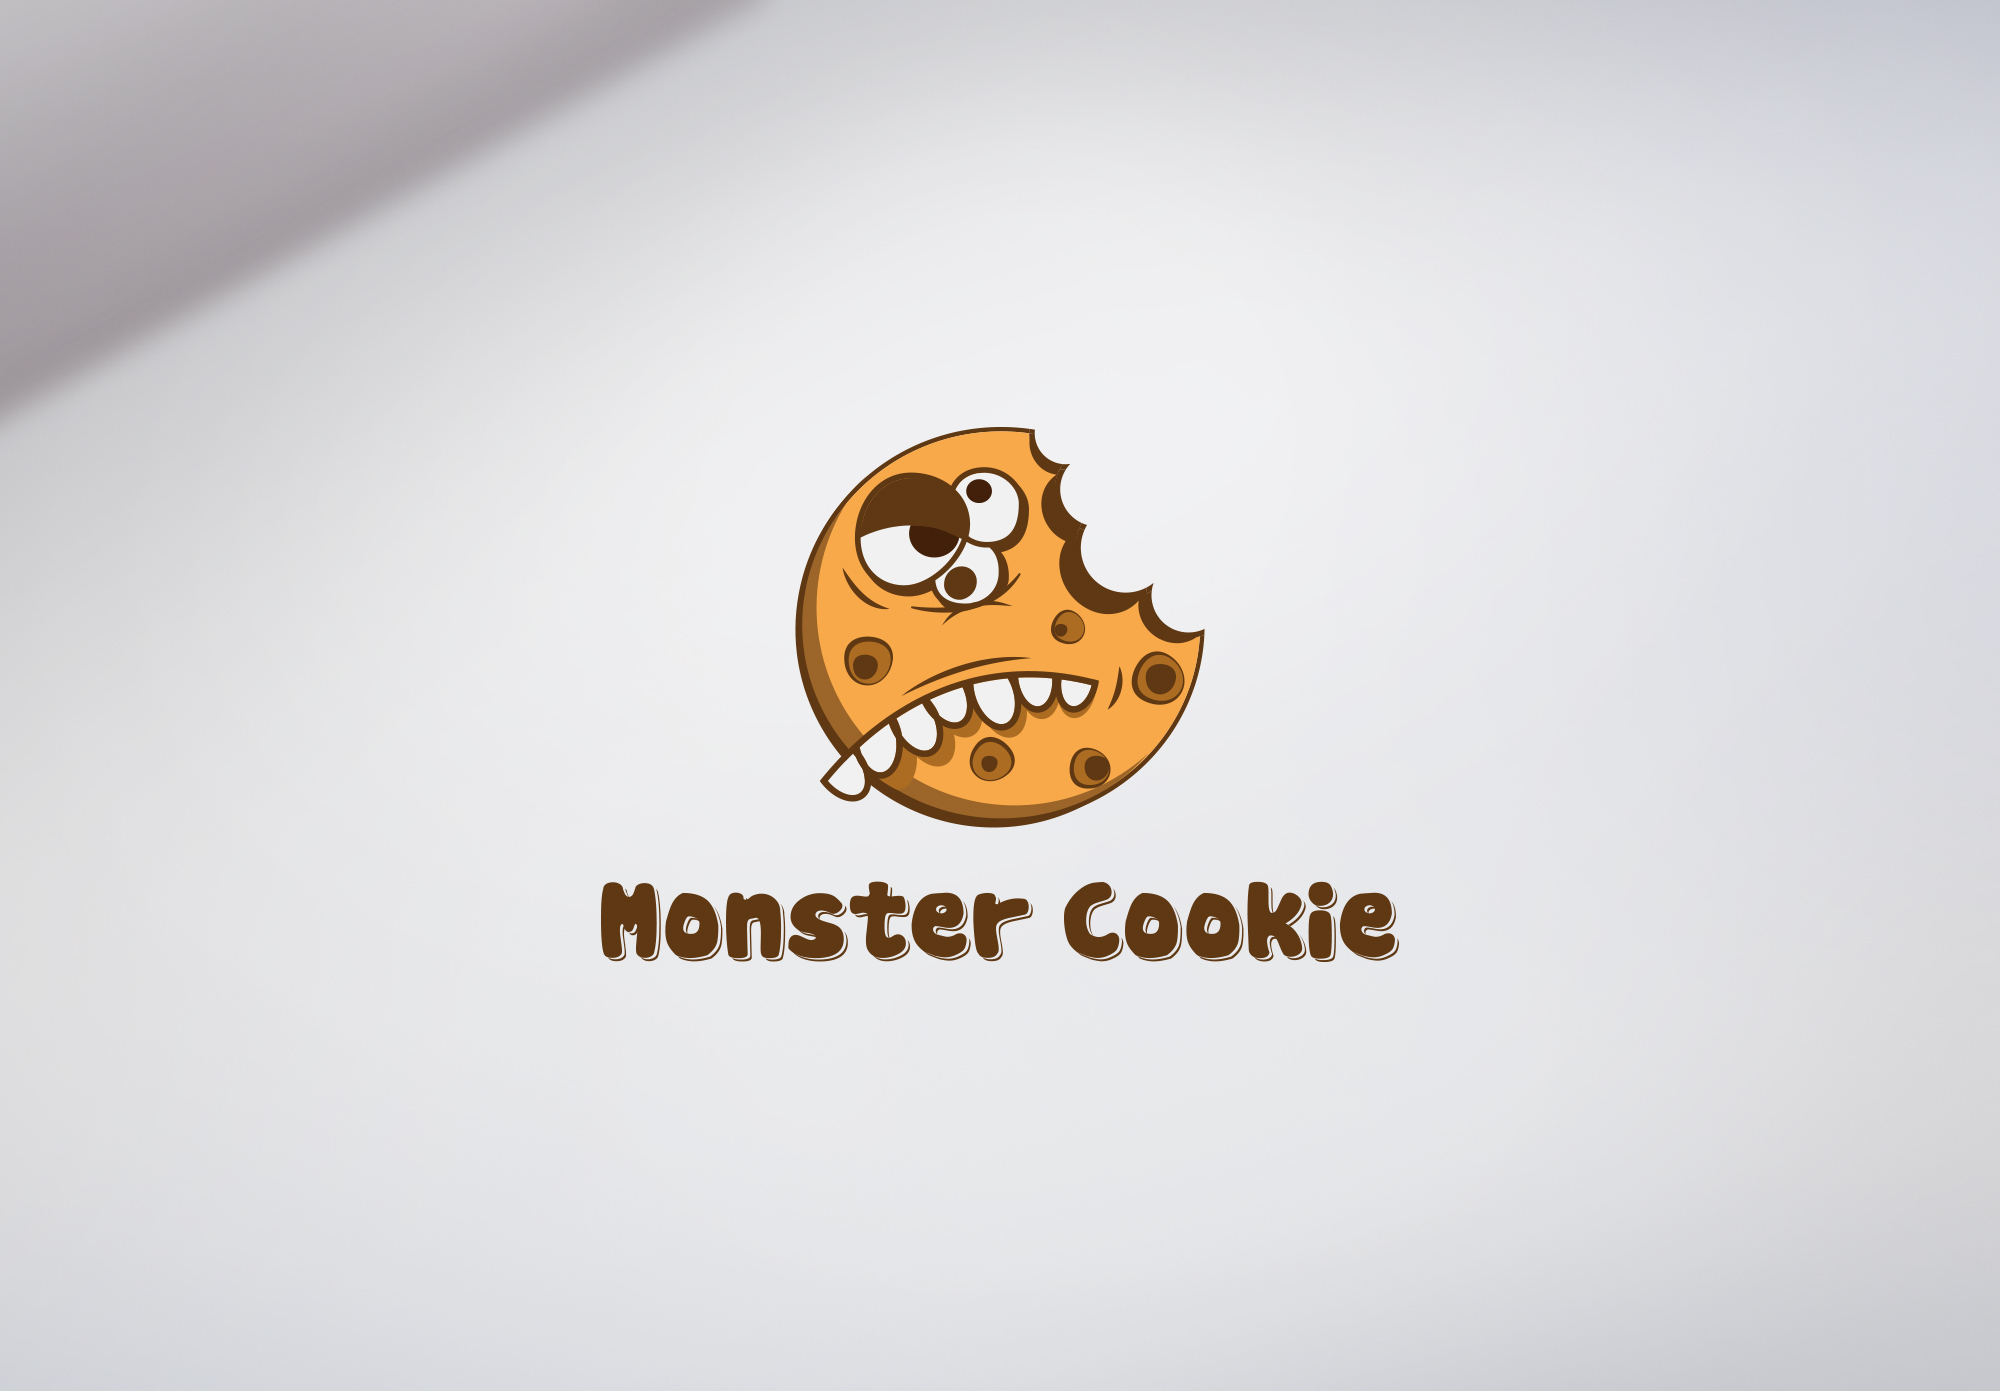 42 monster cookie